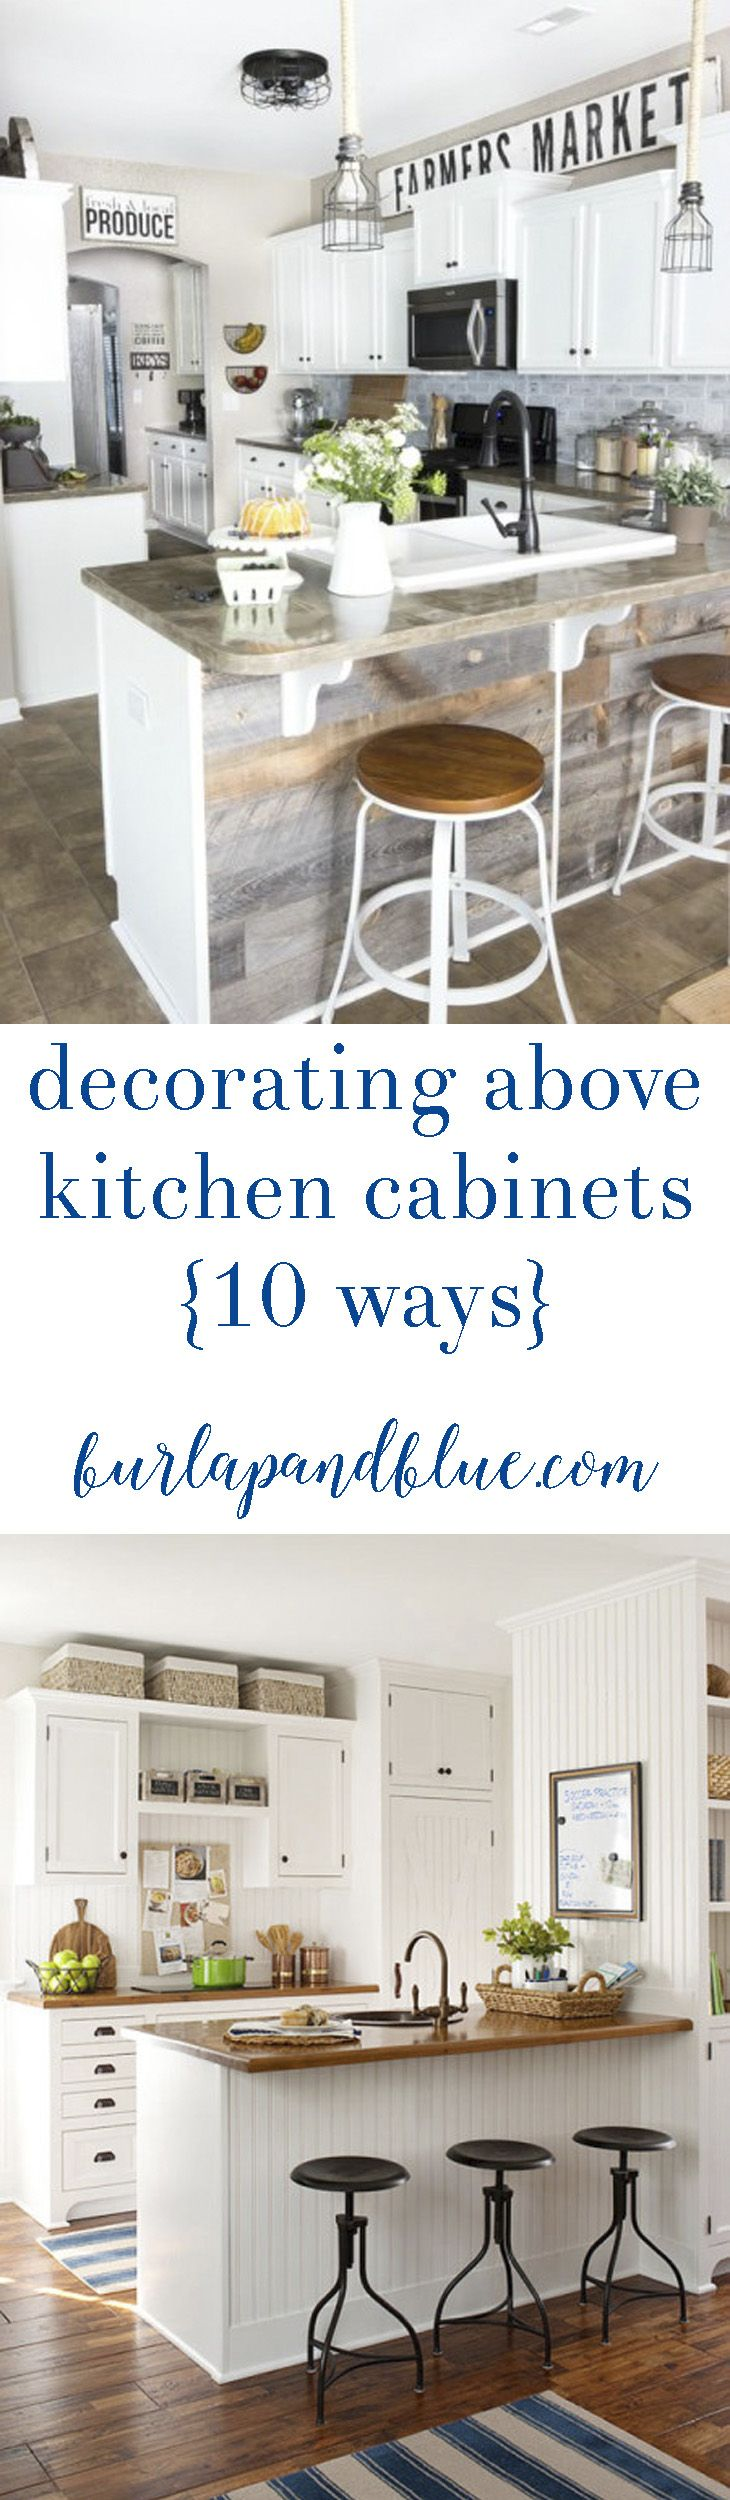 Cabinets Not Reach The Ceiling? Wondering How To Decorate Above Them?  Sharing 10 Easy Ways To Decorate Above Kitchen Cabinets! From Farmhouse To  Classic ...